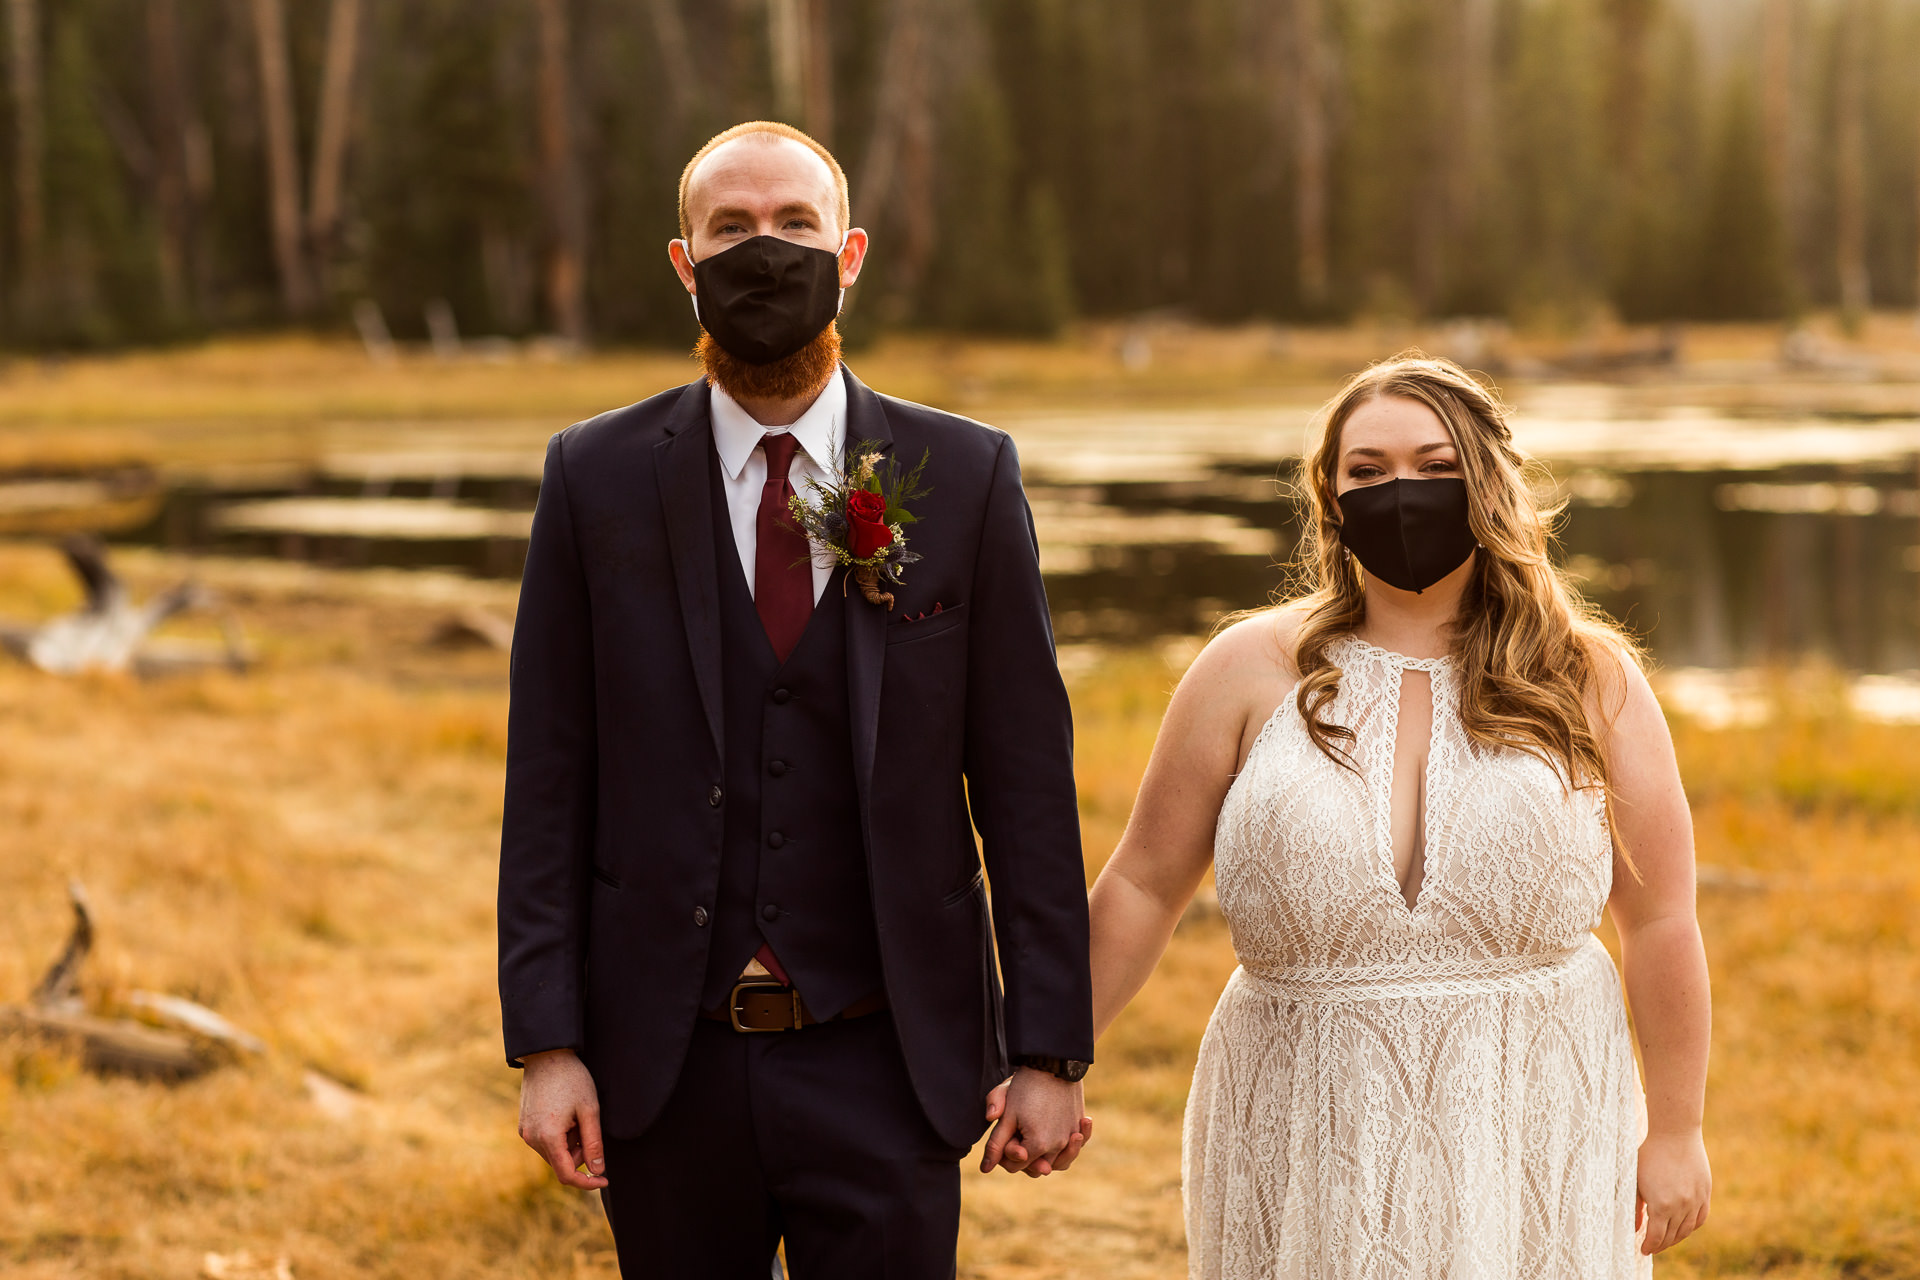 Covid19 Elopement with masks